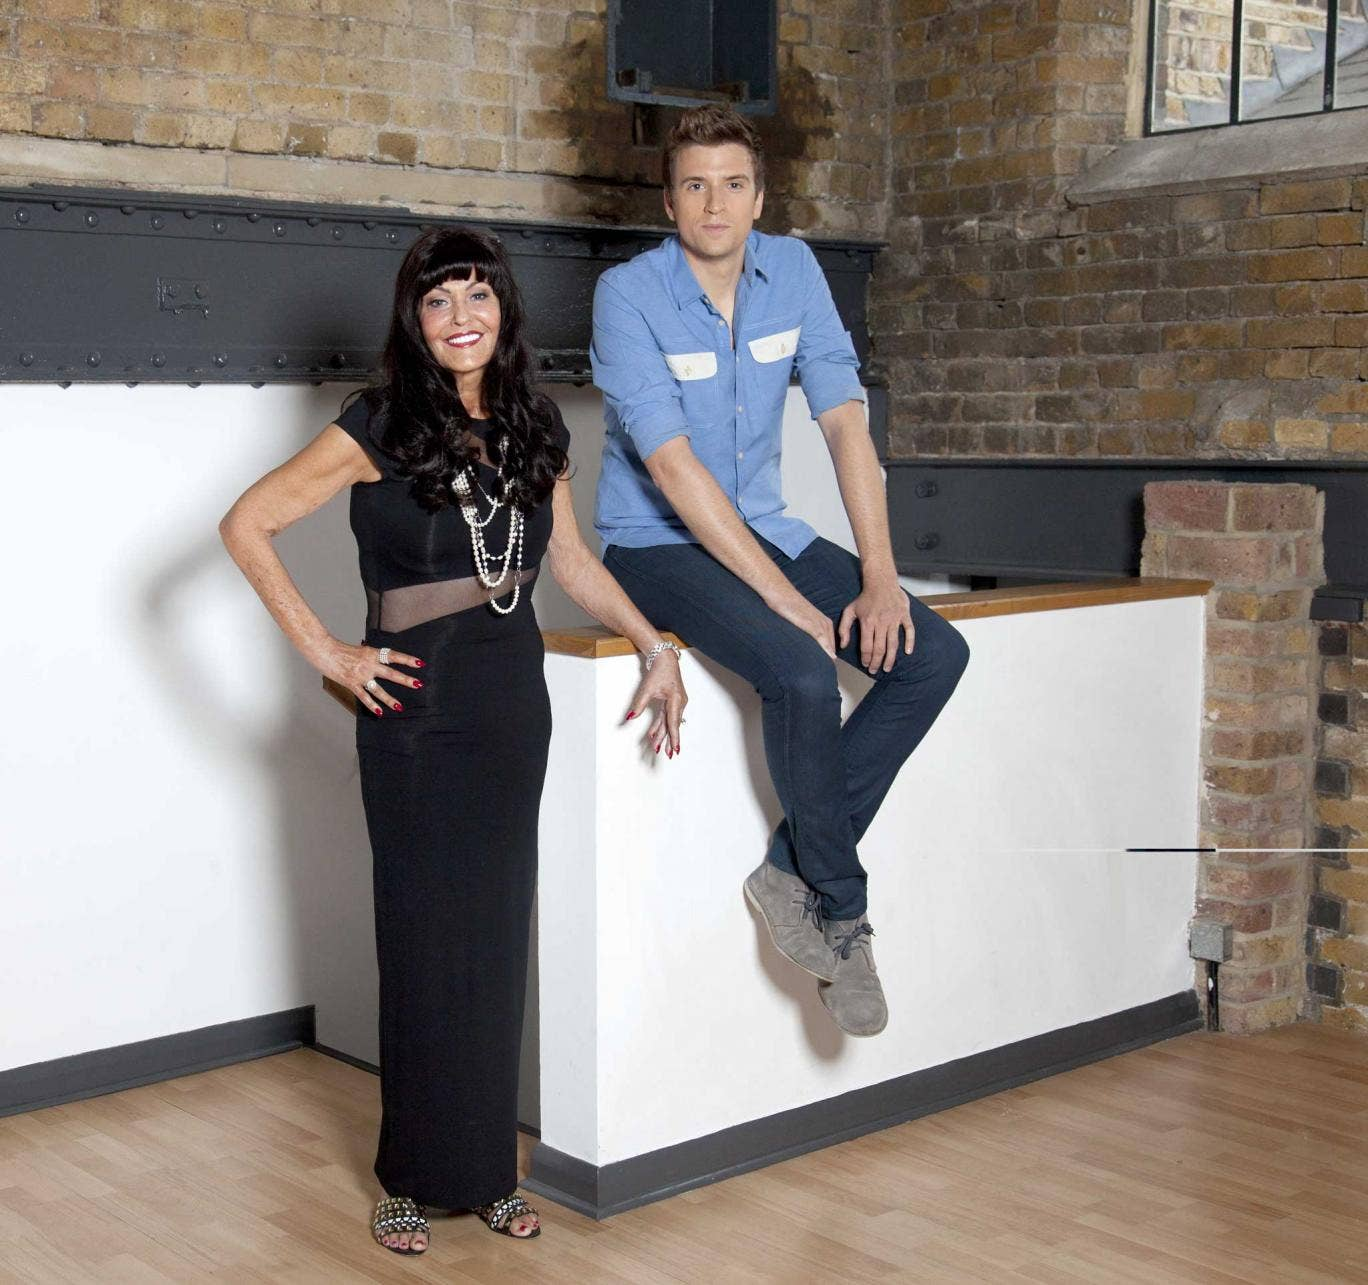 James says he became 'obsessed' with Devey when she started on Dragons' Den in 2011: 'She looked very stern and powerful but she was actually nice to people who came on.'